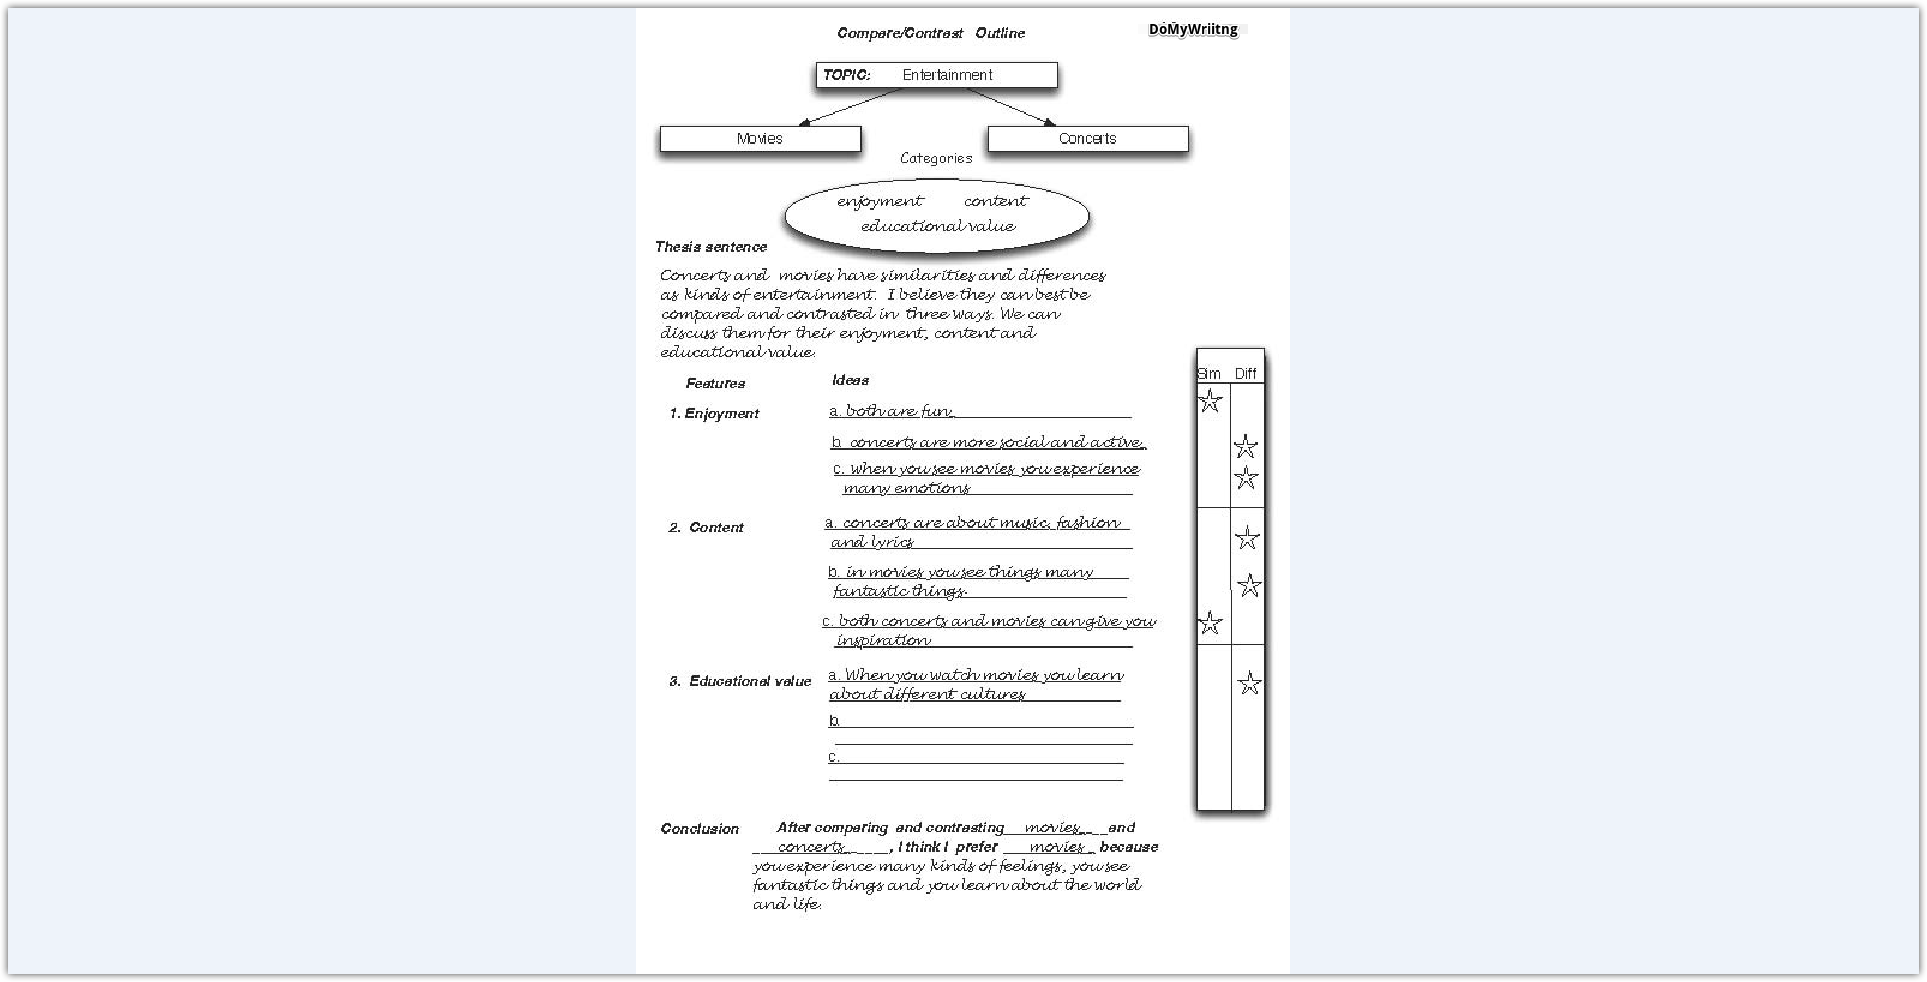 017 Compare And Contrast Essay Structure Stupendous Ppt Format Outline Full